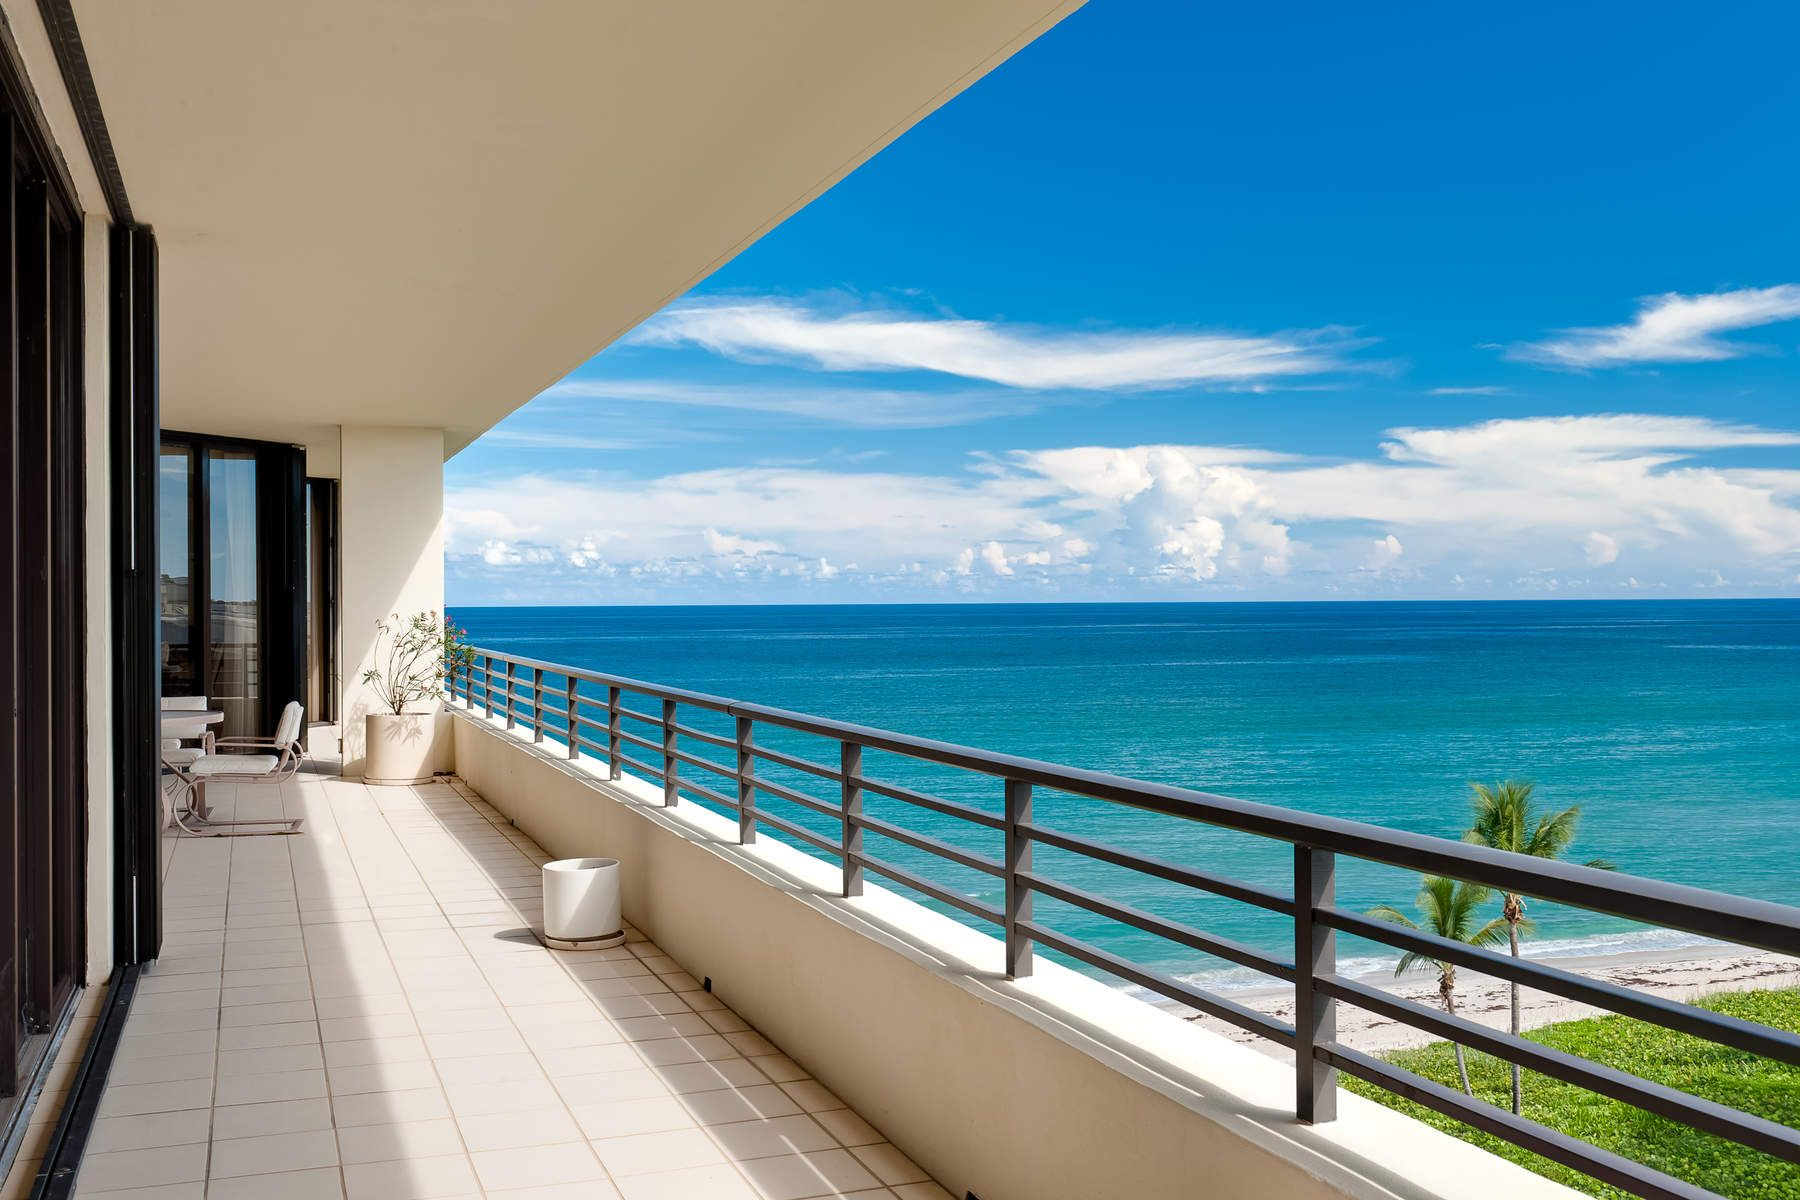 Condominium for Sale at Ultimate Oceanfront Penthouse 3100 S Ocean Blvd Ph 605S, Palm Beach, Florida, 33480 United States